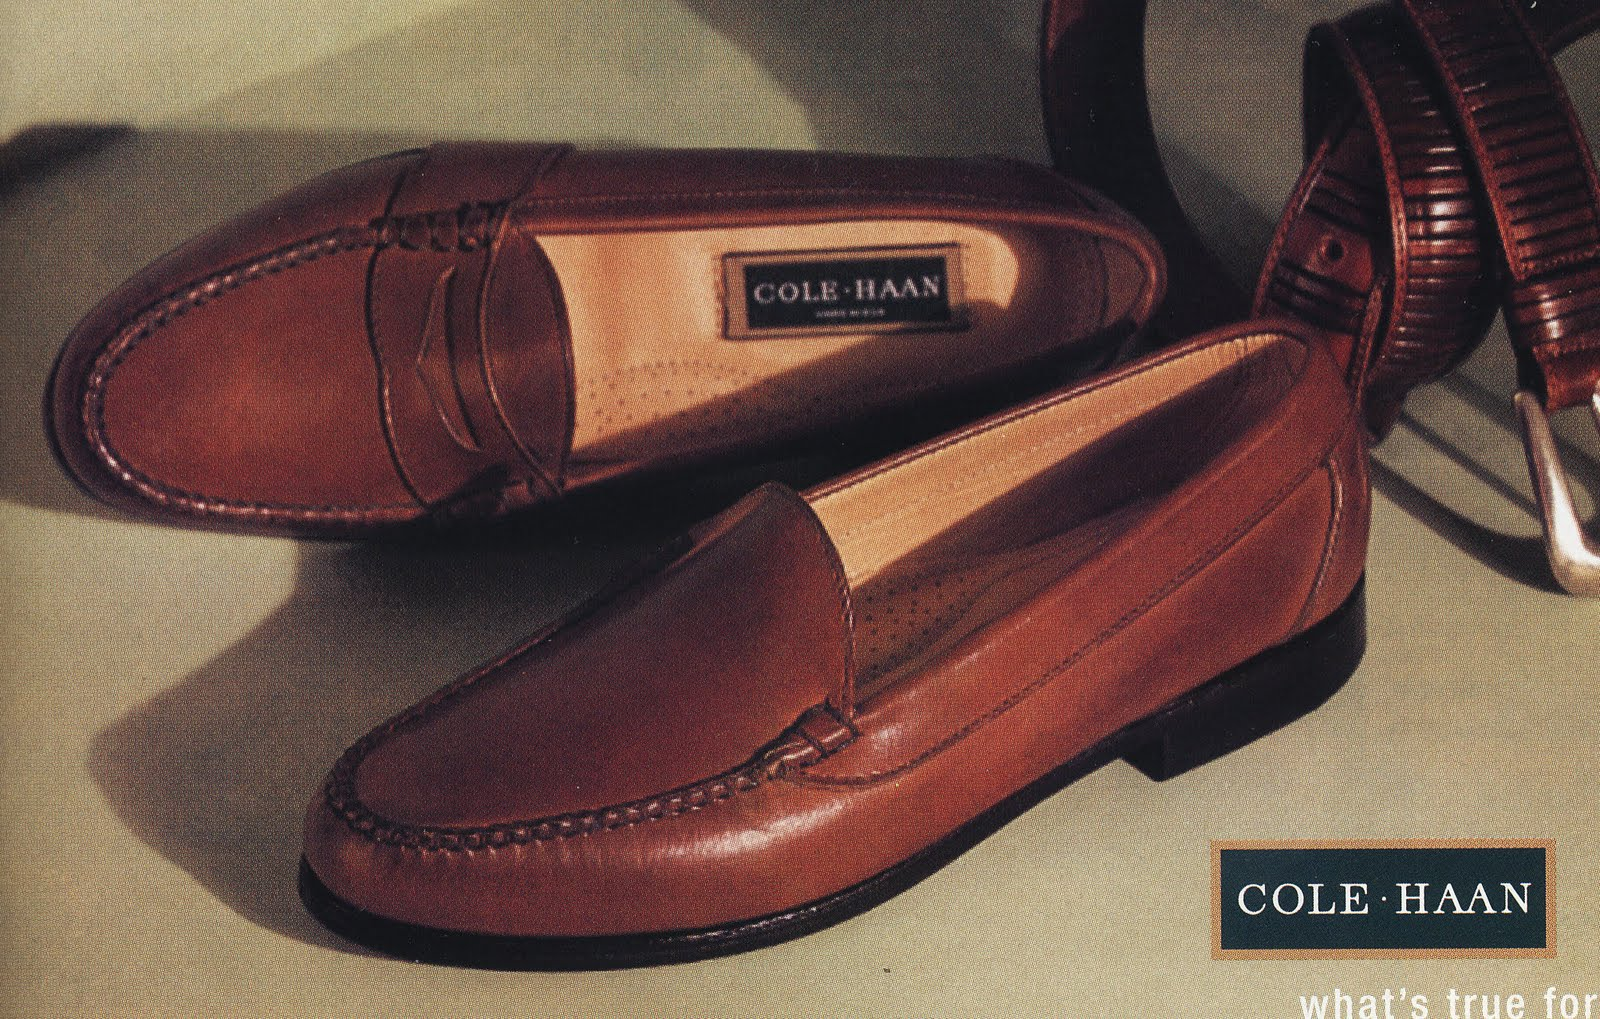 Probable Maximum Loss: Cole Haan